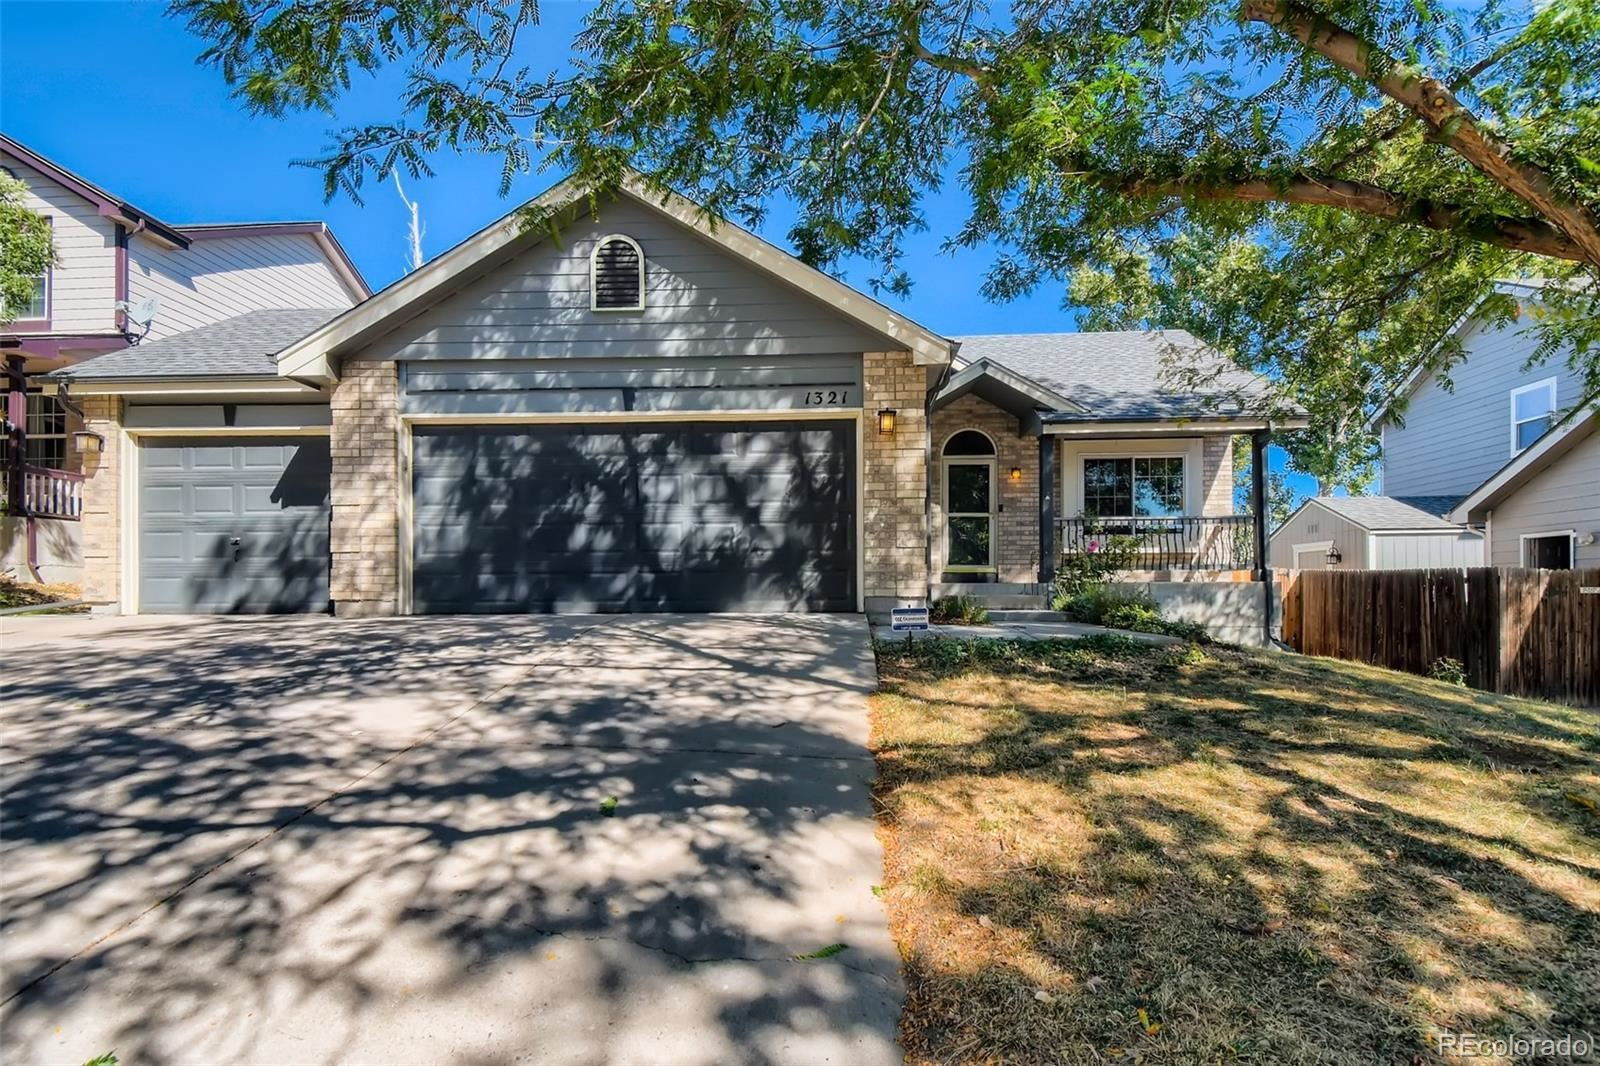 Photo of 1321 E 96th Place, Thornton, CO 80229 (MLS # 1809347)